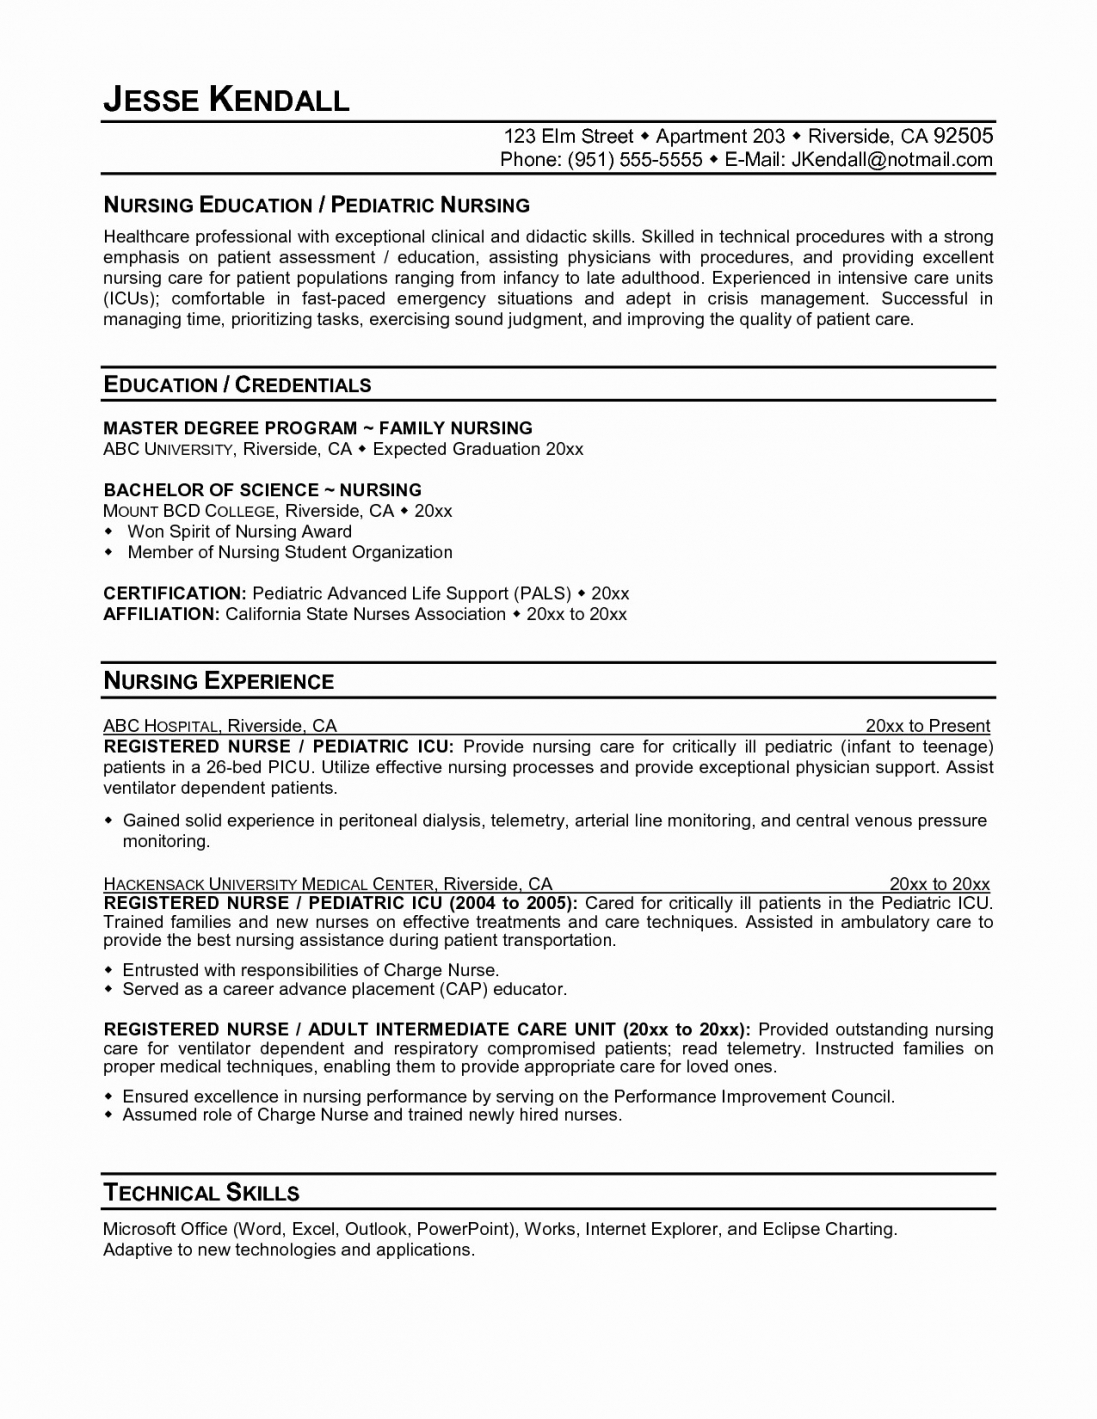 Nursing Resume Templates For Microsoft Word 2018 Nurse Resume